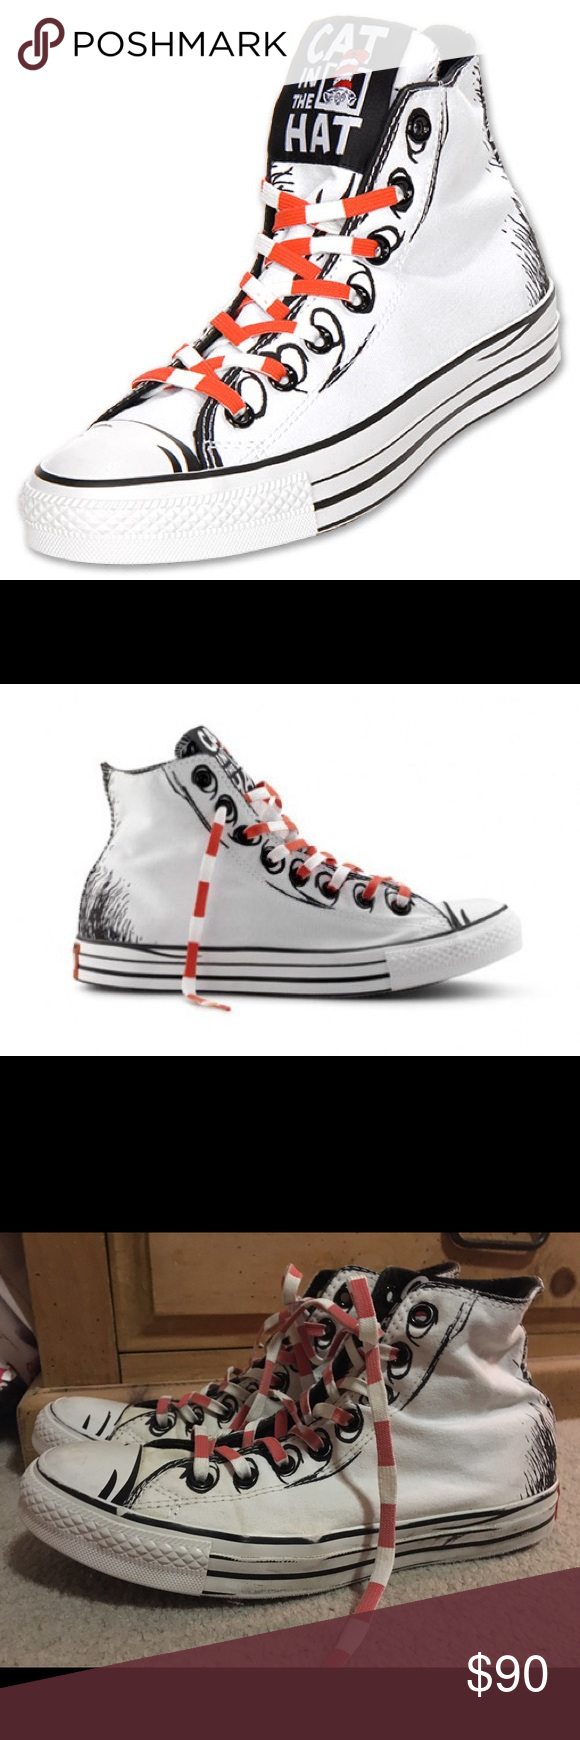 a9d94bde84b8 RARE CONVERSE CAT IN THE HAT CHUCK TAYLOR SHOES RARE CONVERSE CAT IN THE  HAT DR. SEUSS CHUCK TAYLOR SHOES MEN SZ 8 WOMEN SZ 10 Converse Shoes  Sneakers